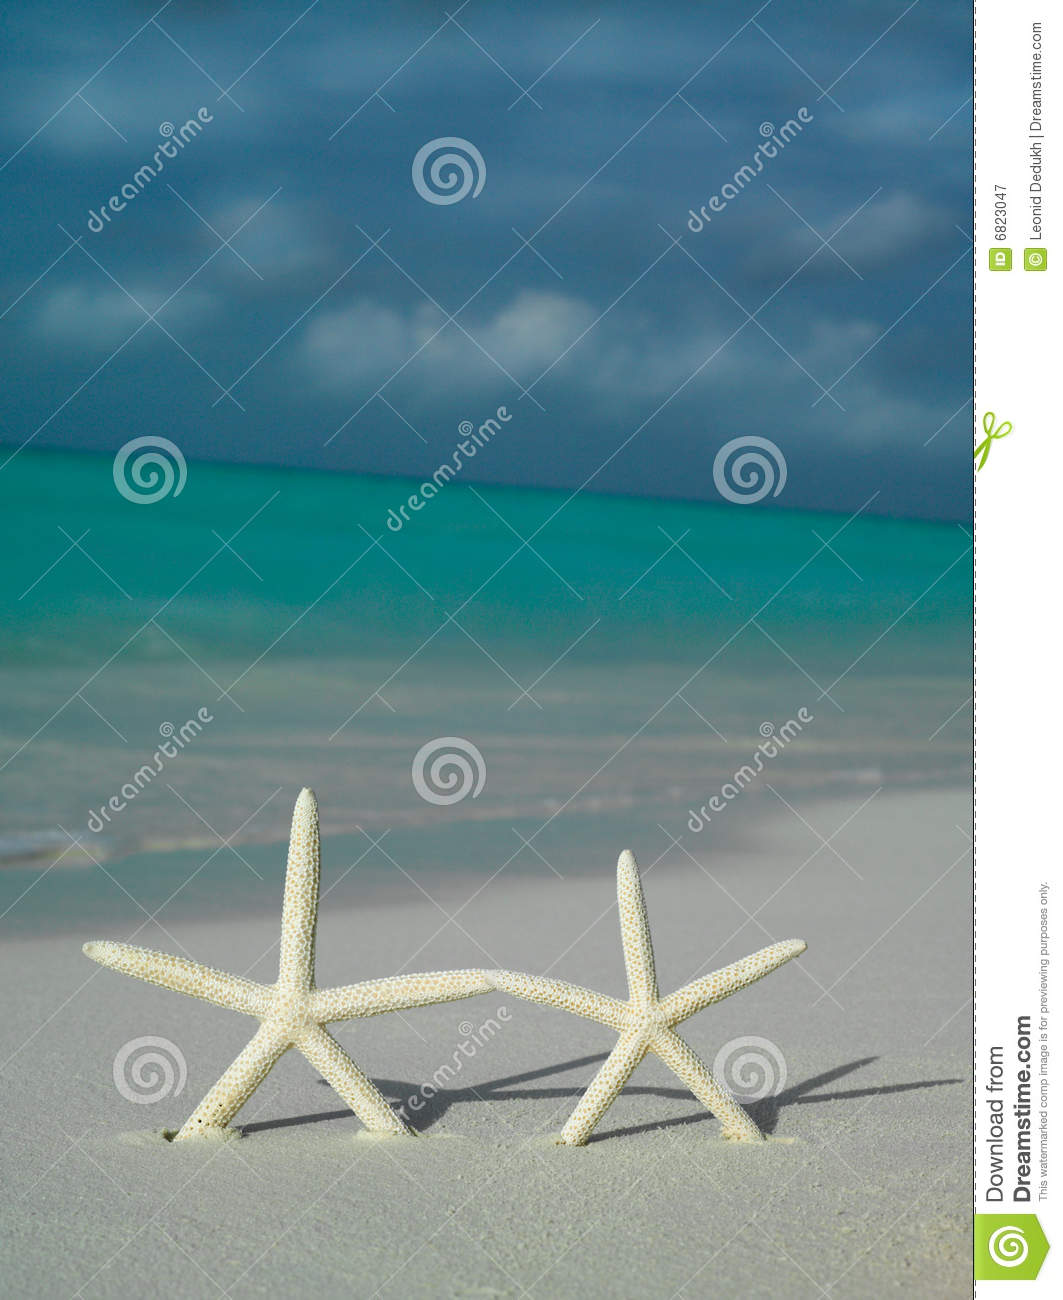 Two starfishs on the beach